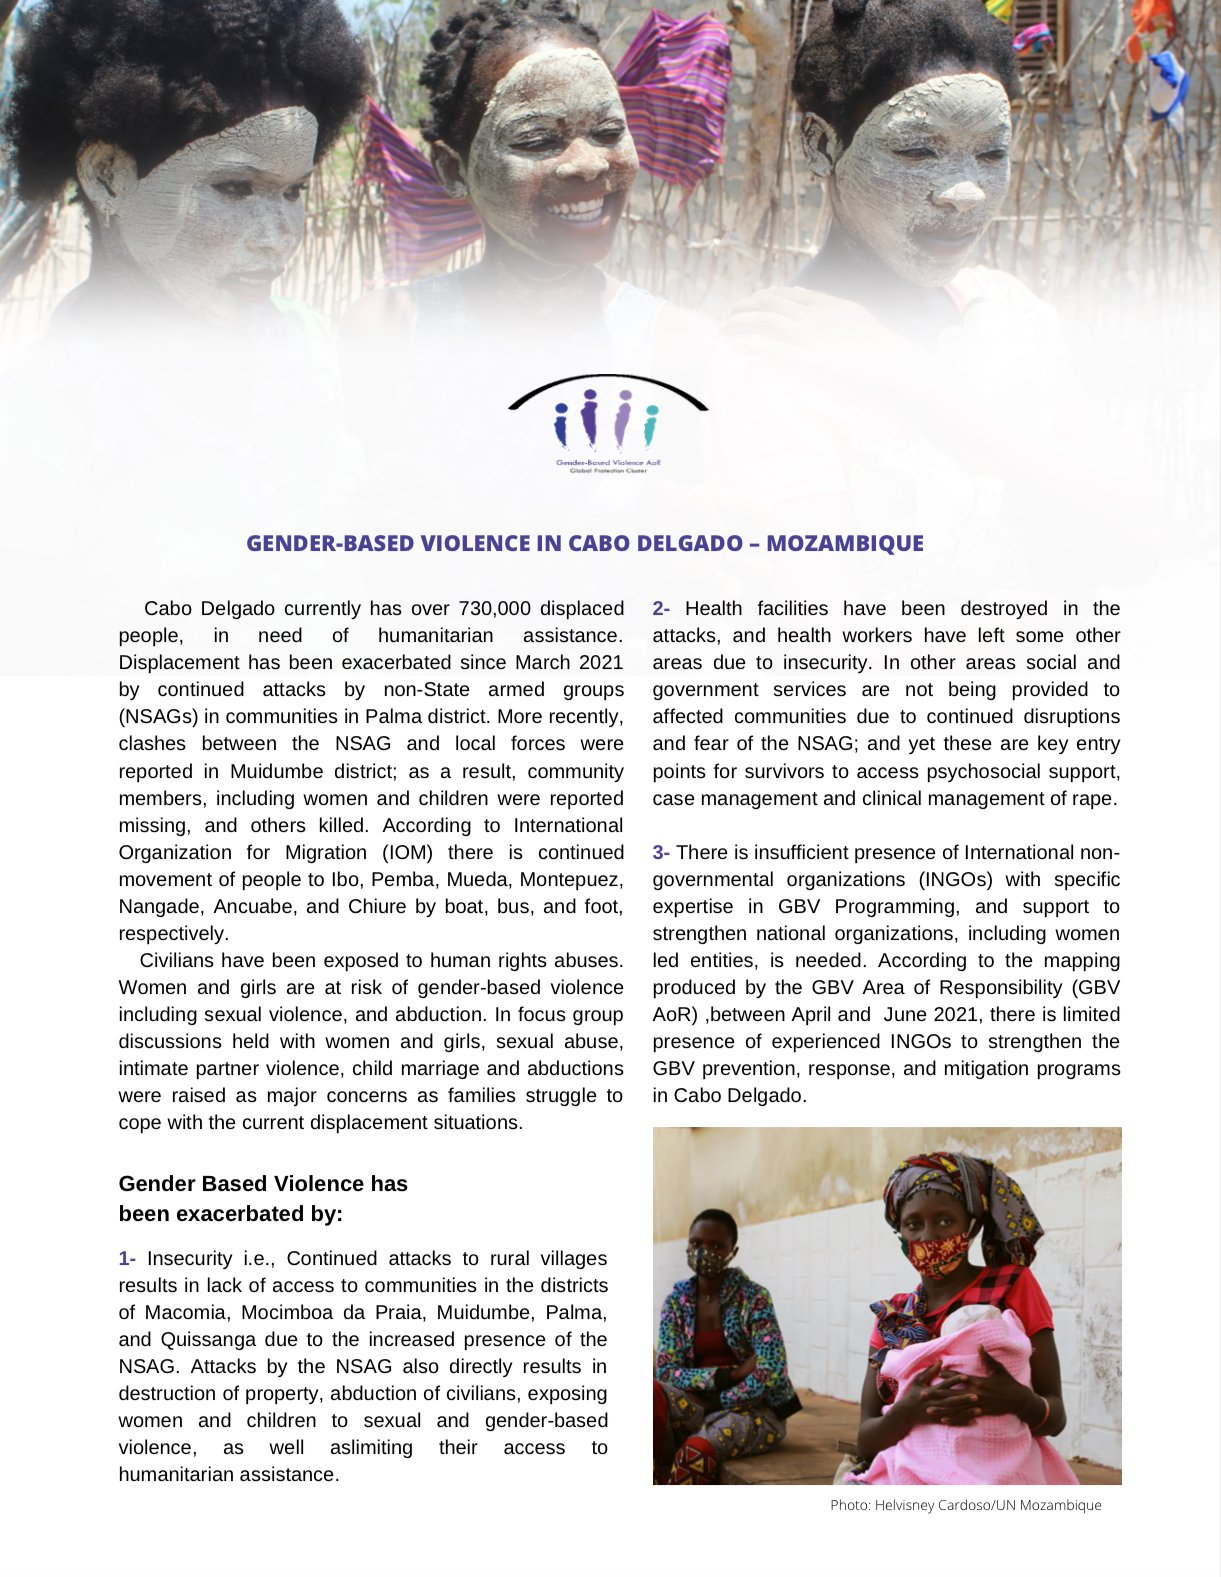 GBV AoR (Area of Responsibility) Advocacy Note for Cabo Delgado